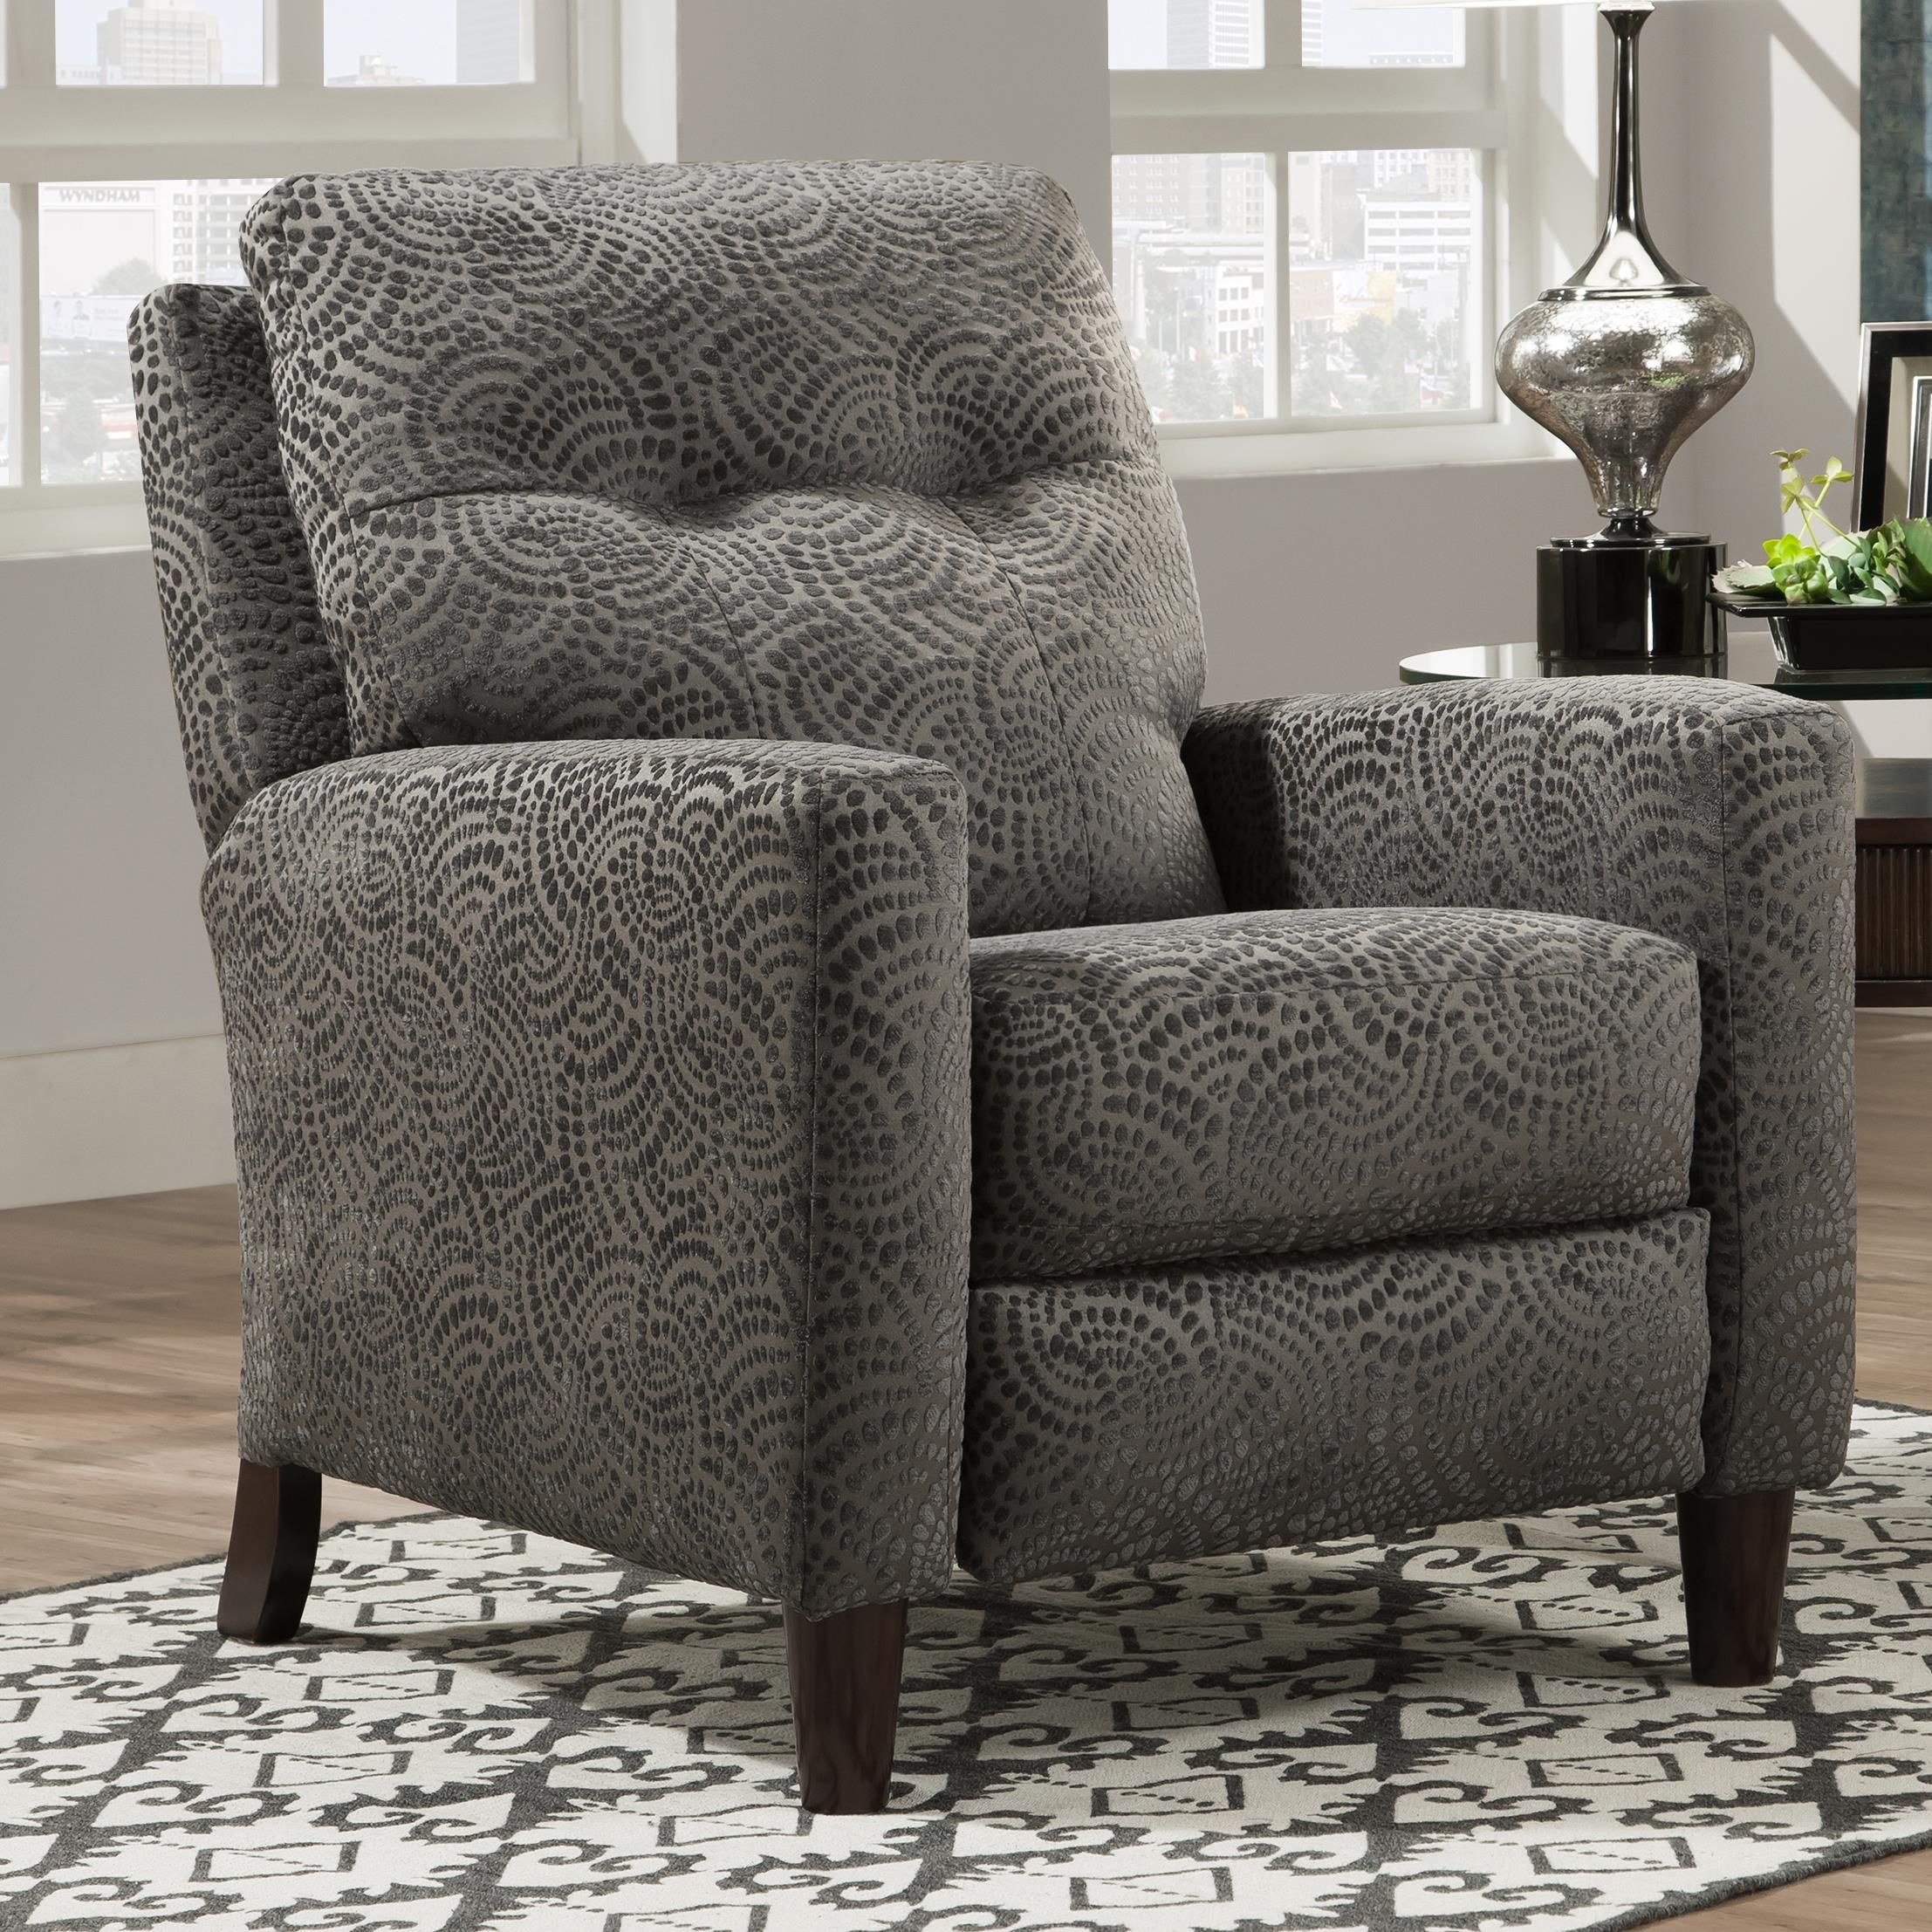 Shop for the Southern Motion Recliners Bella Power High Leg Recliner at Johnny Janosik - Your Delaware Maryland Virginia Delmarva Furniture ... & Recliners Bella High Leg Recliner by Southern Motion | Living Room ... islam-shia.org